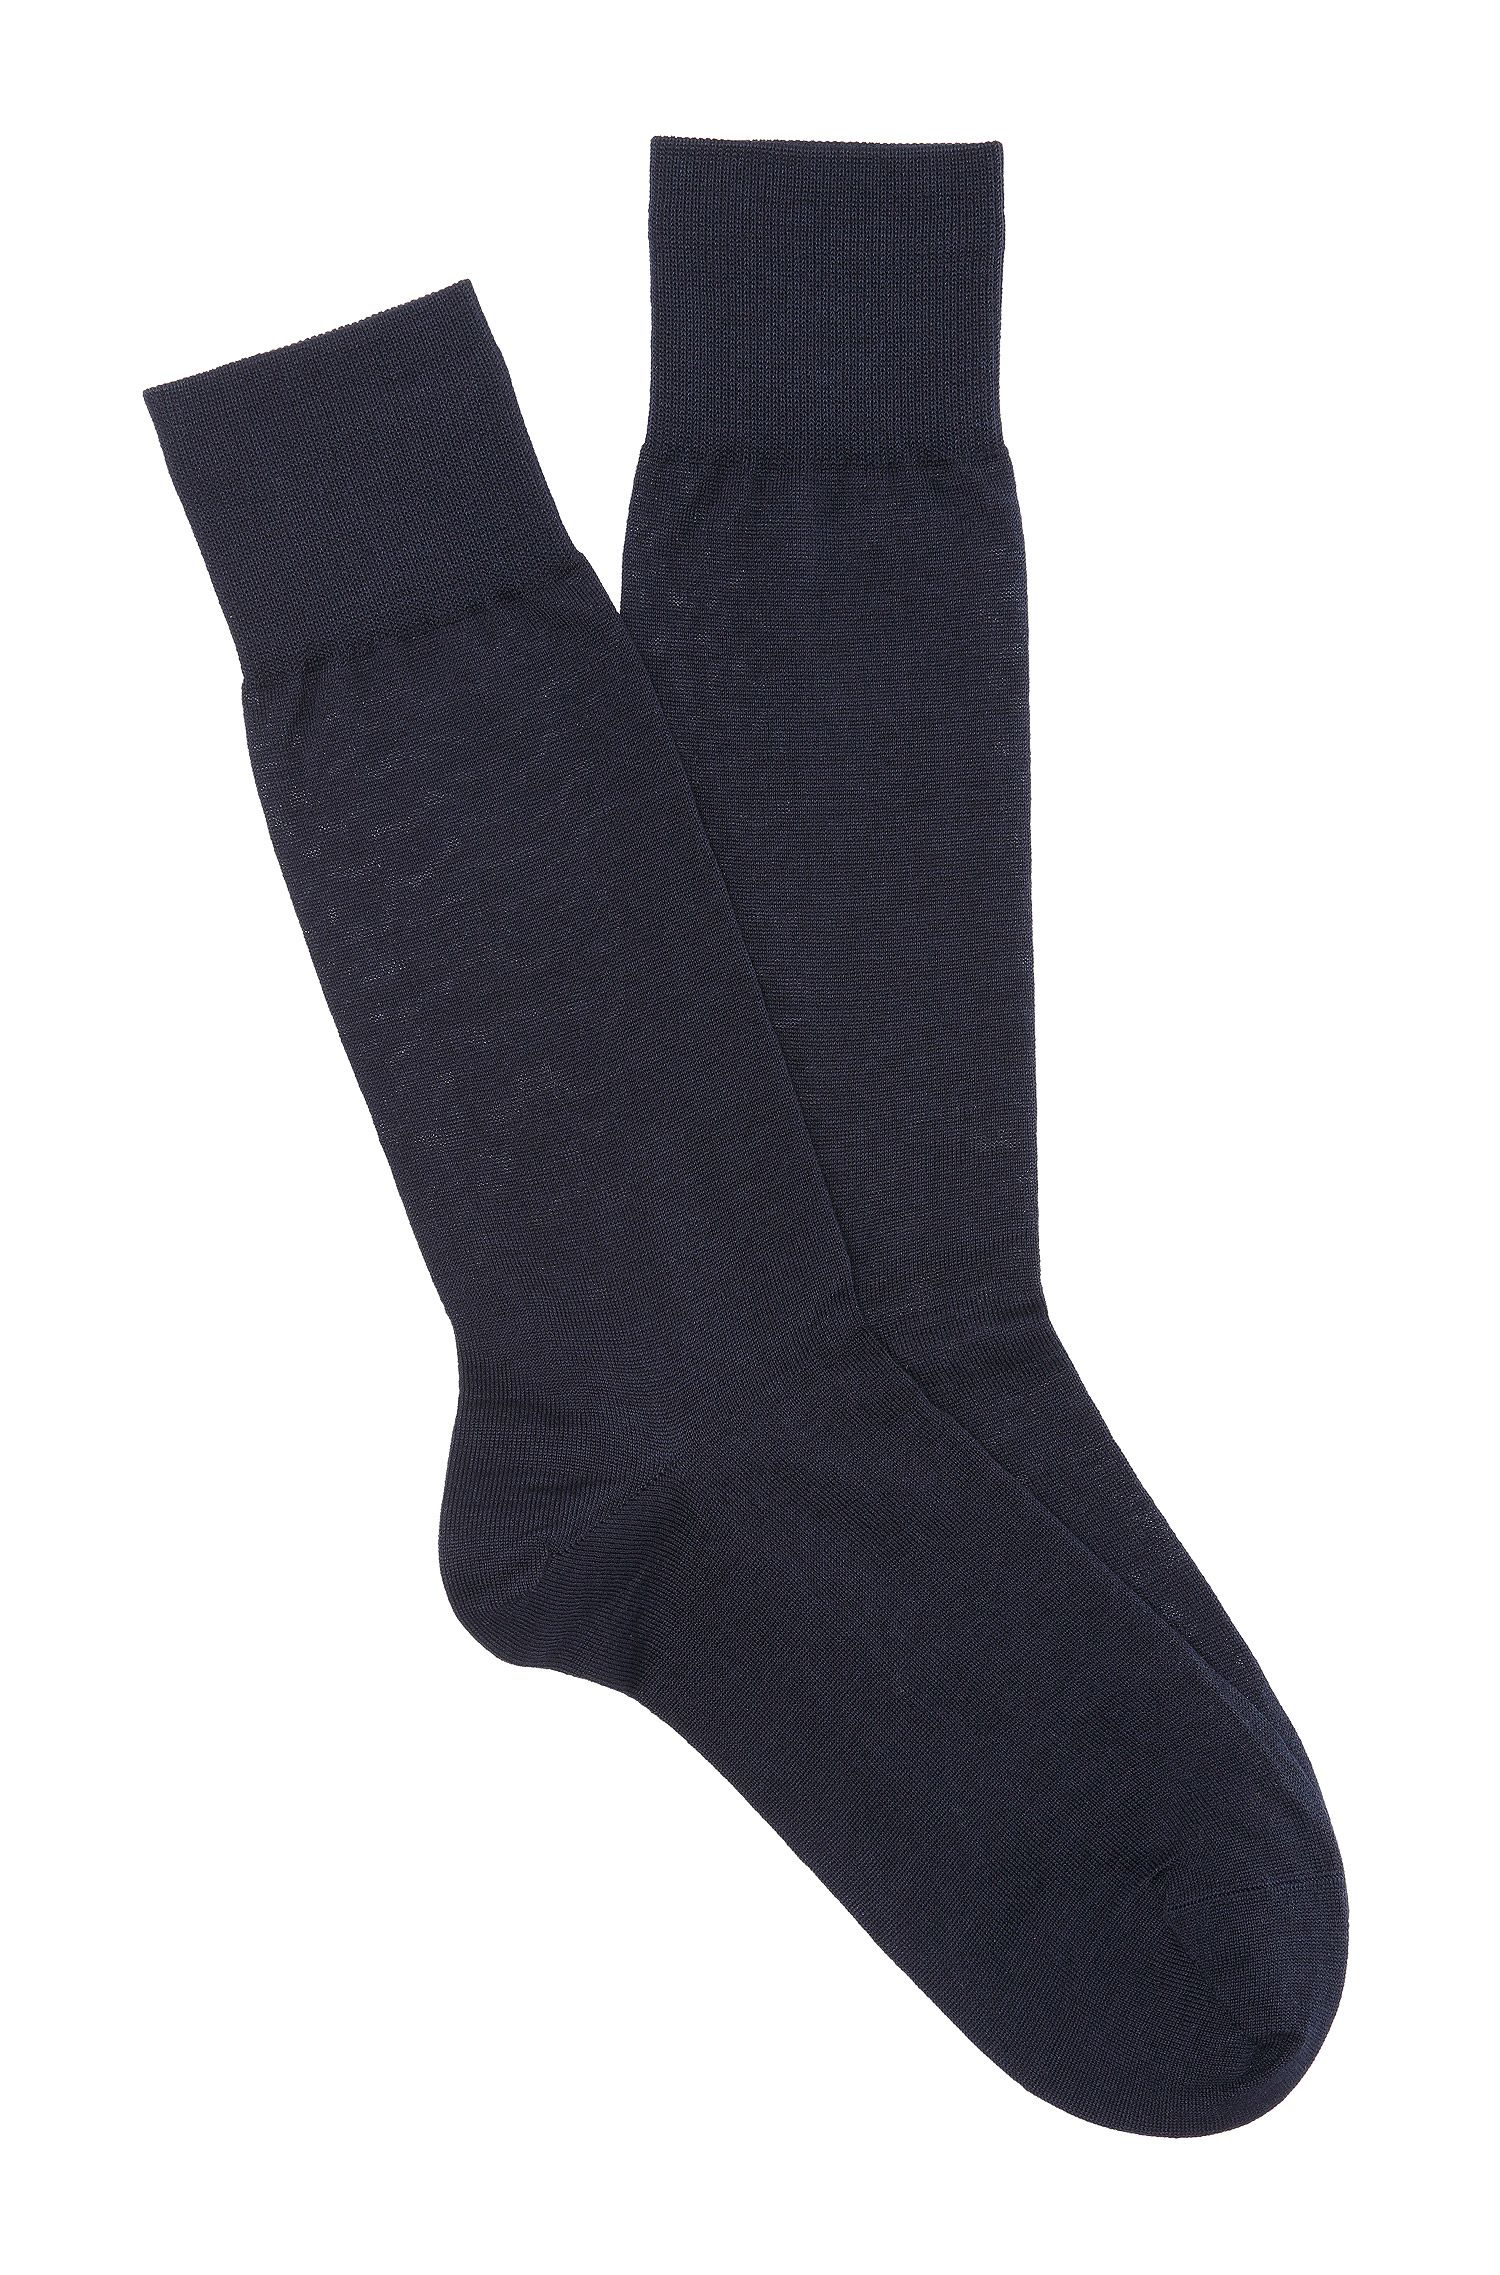 Socken ´TL Wool Silk RS` aus Wolle-Mix mit Seide